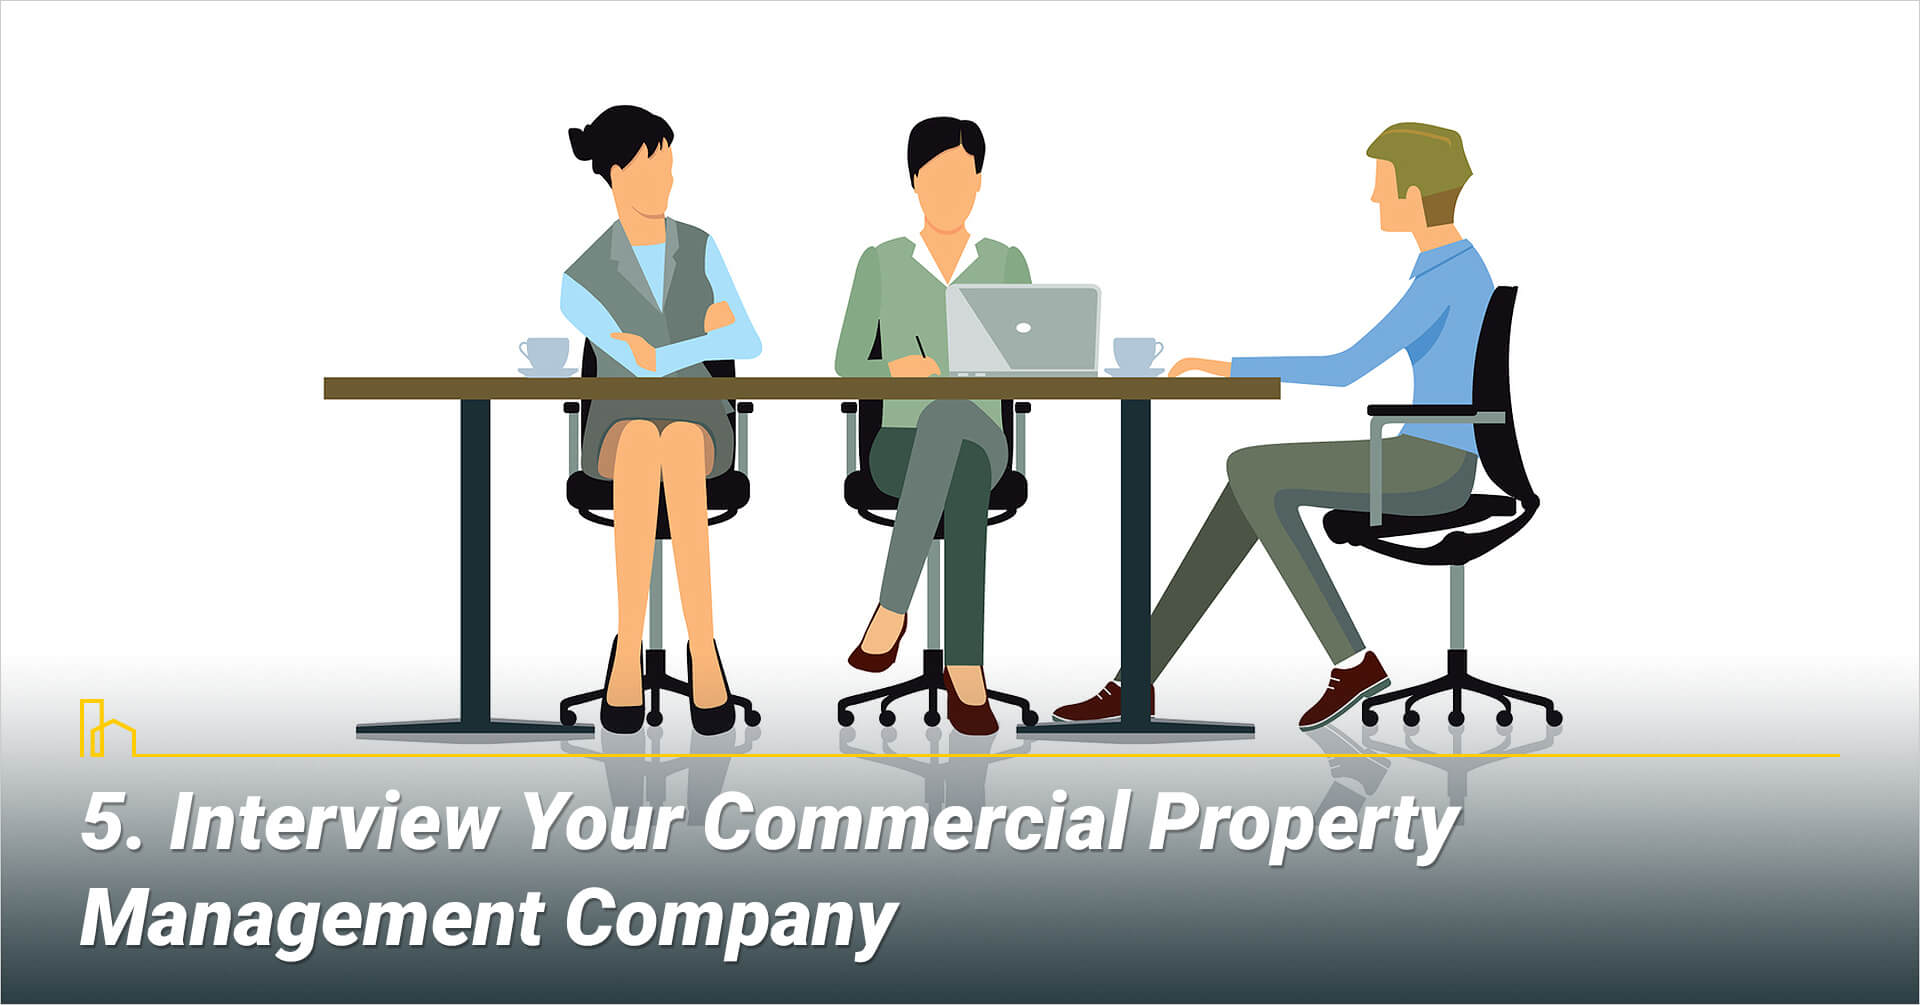 Interview Your Commercial Property Management Company, get one on one with the company